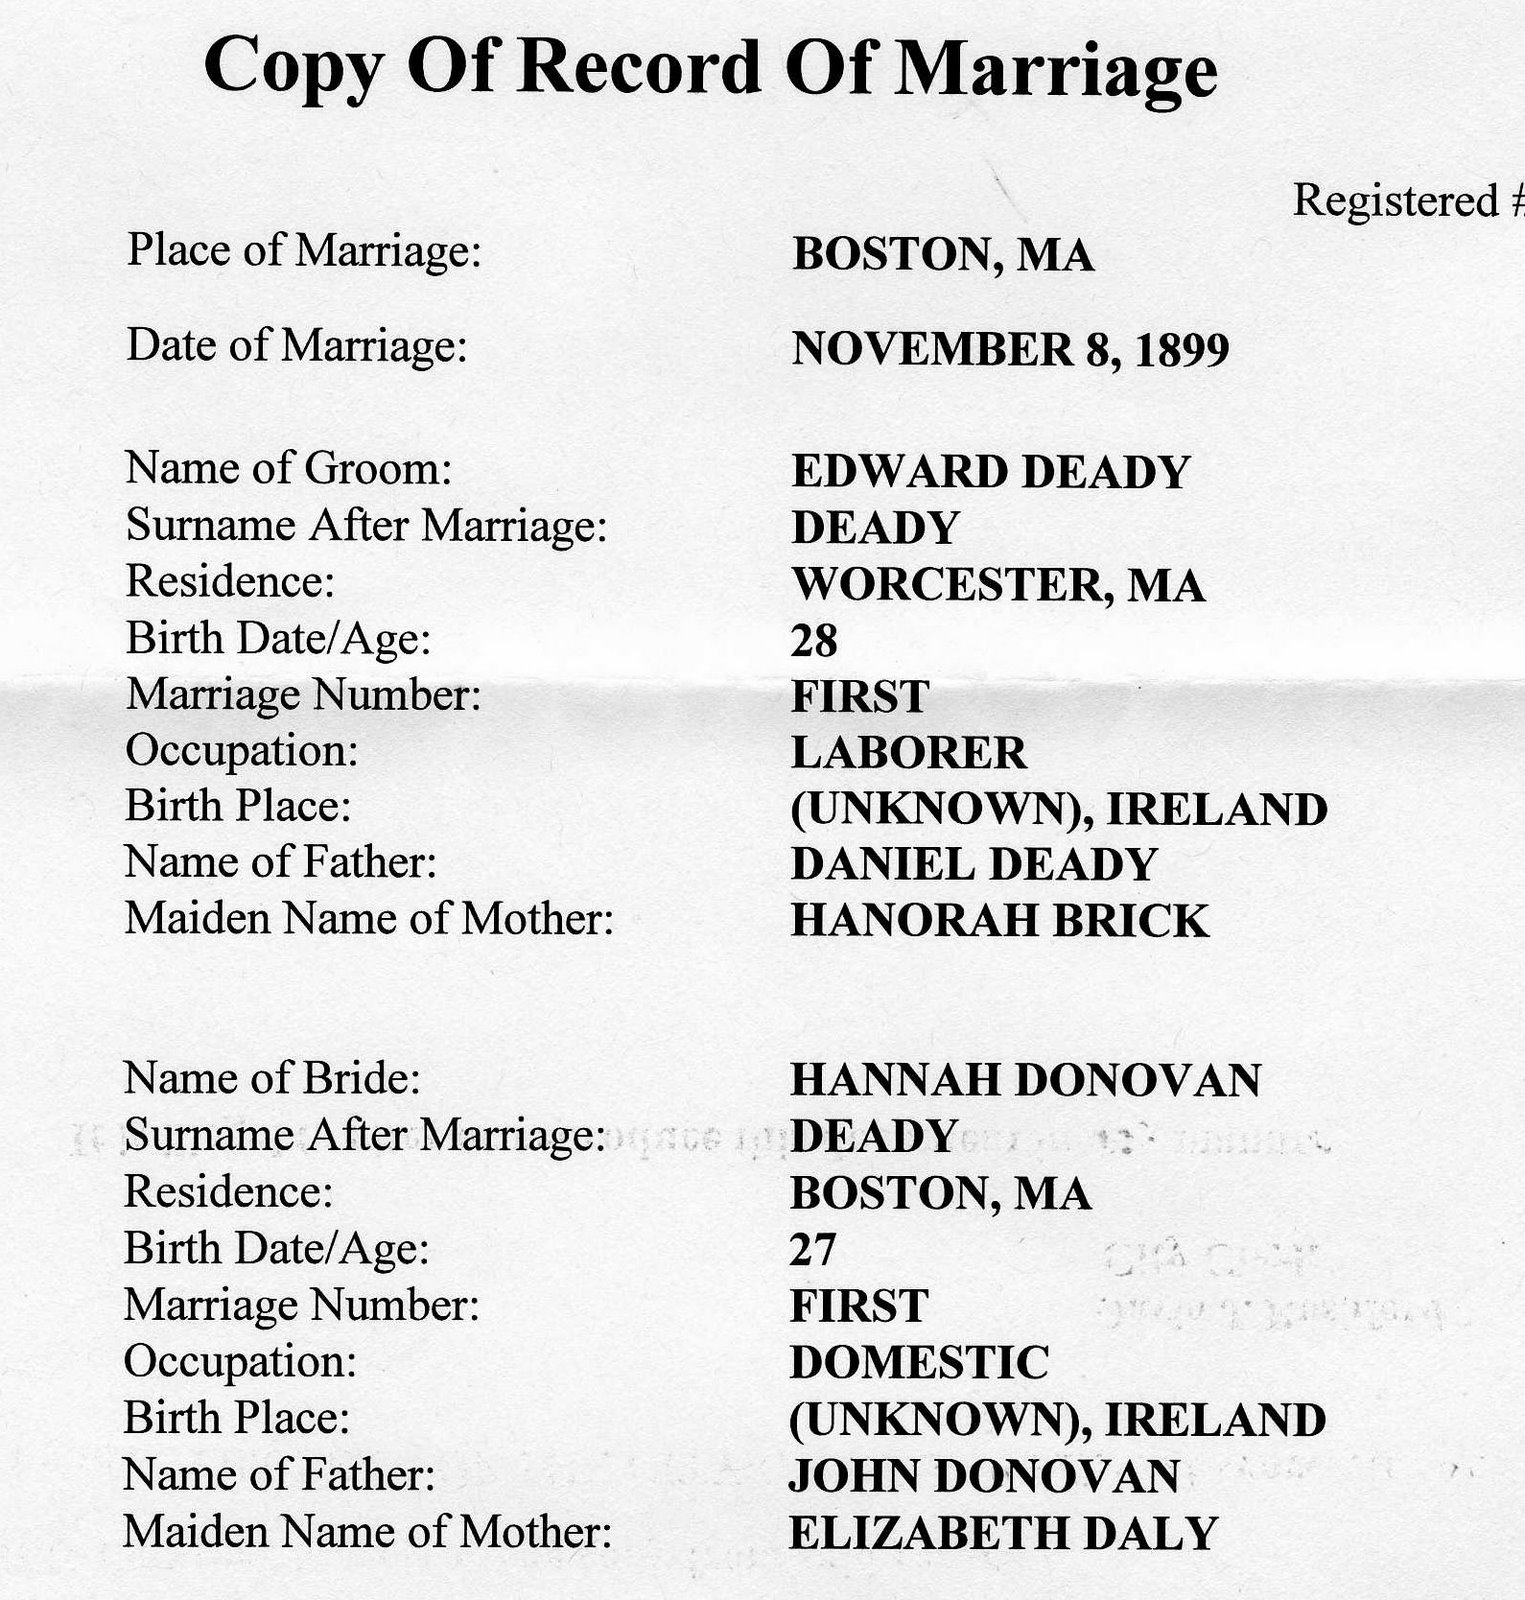 Deedy blog edward deedy and hannah donovan marriage recently i received the marriage certificate for edward deedy and hannah donovan from the city of worcester below are the details aiddatafo Image collections